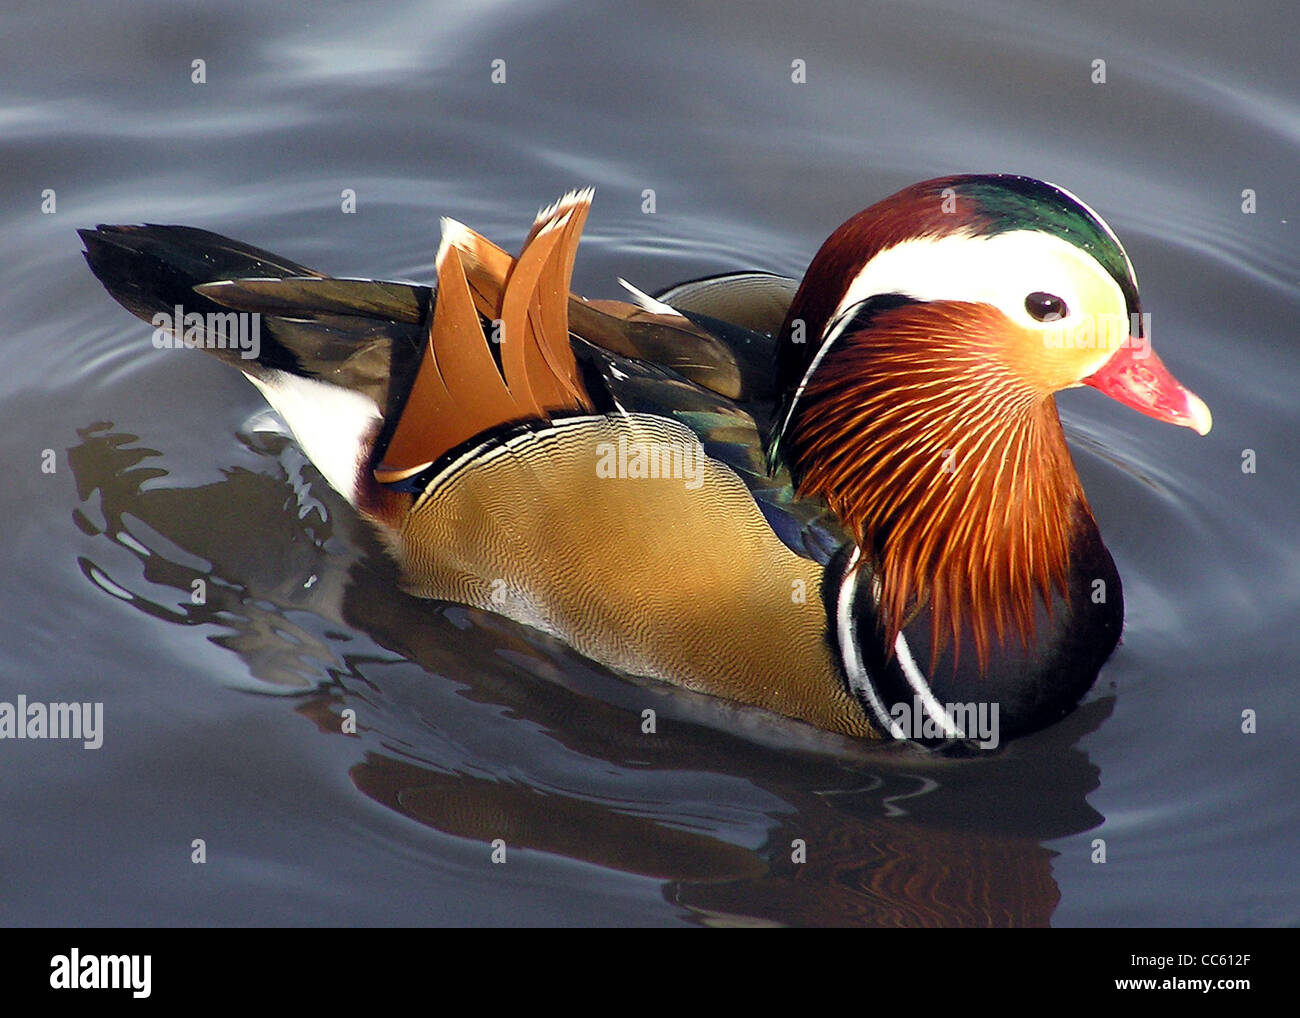 A male Mandarin Duck at Slimbridge Wildfowl and Wetlands Centre, Gloucestershire, England - Stock Image